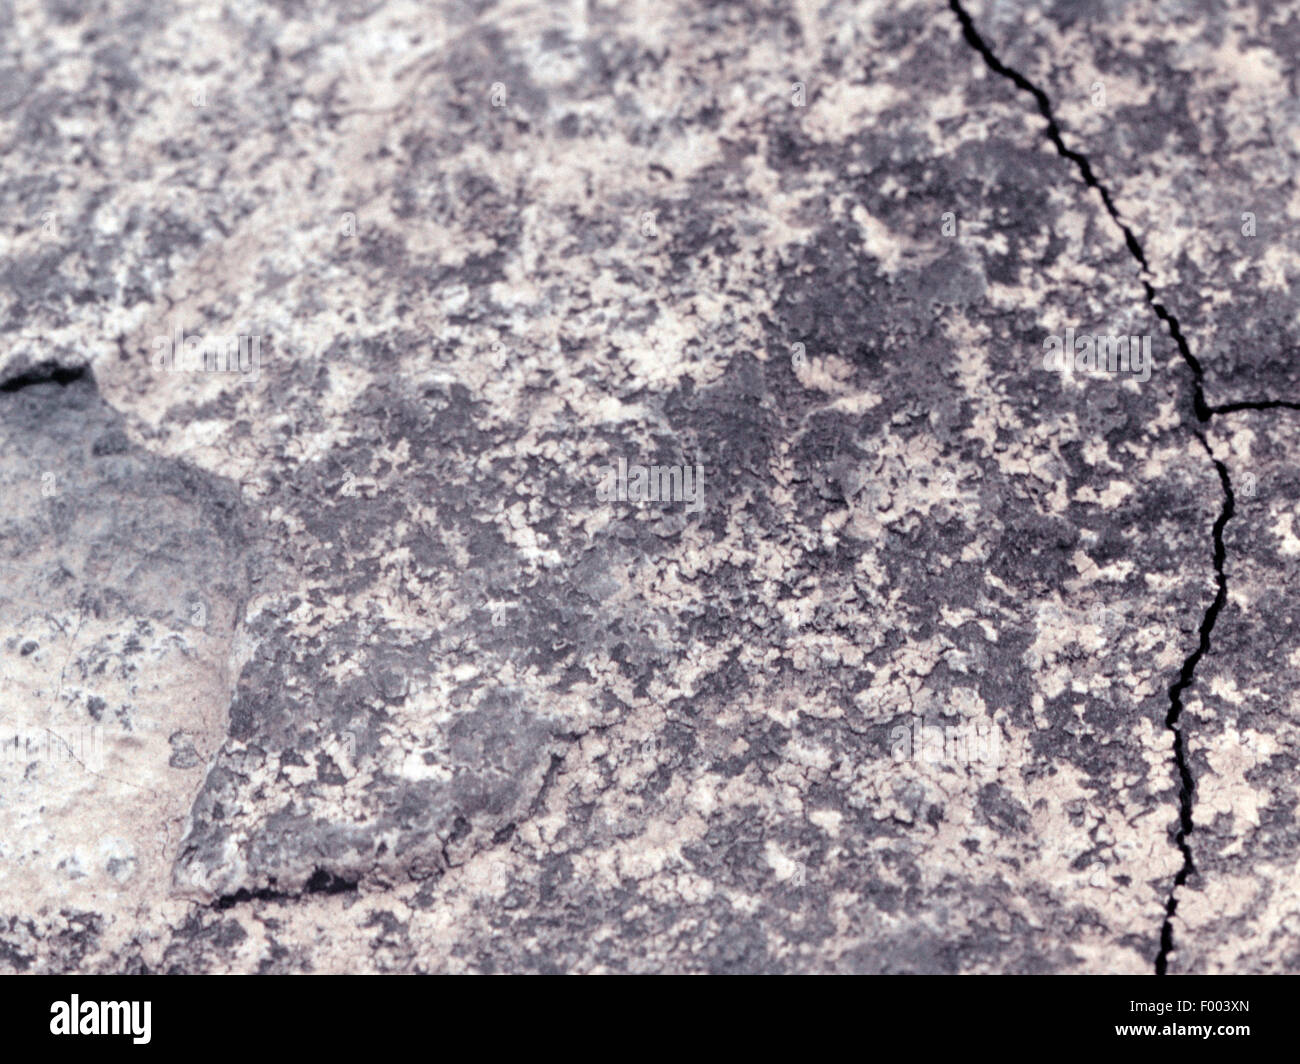 copper shale, Central Europe - Stock Image